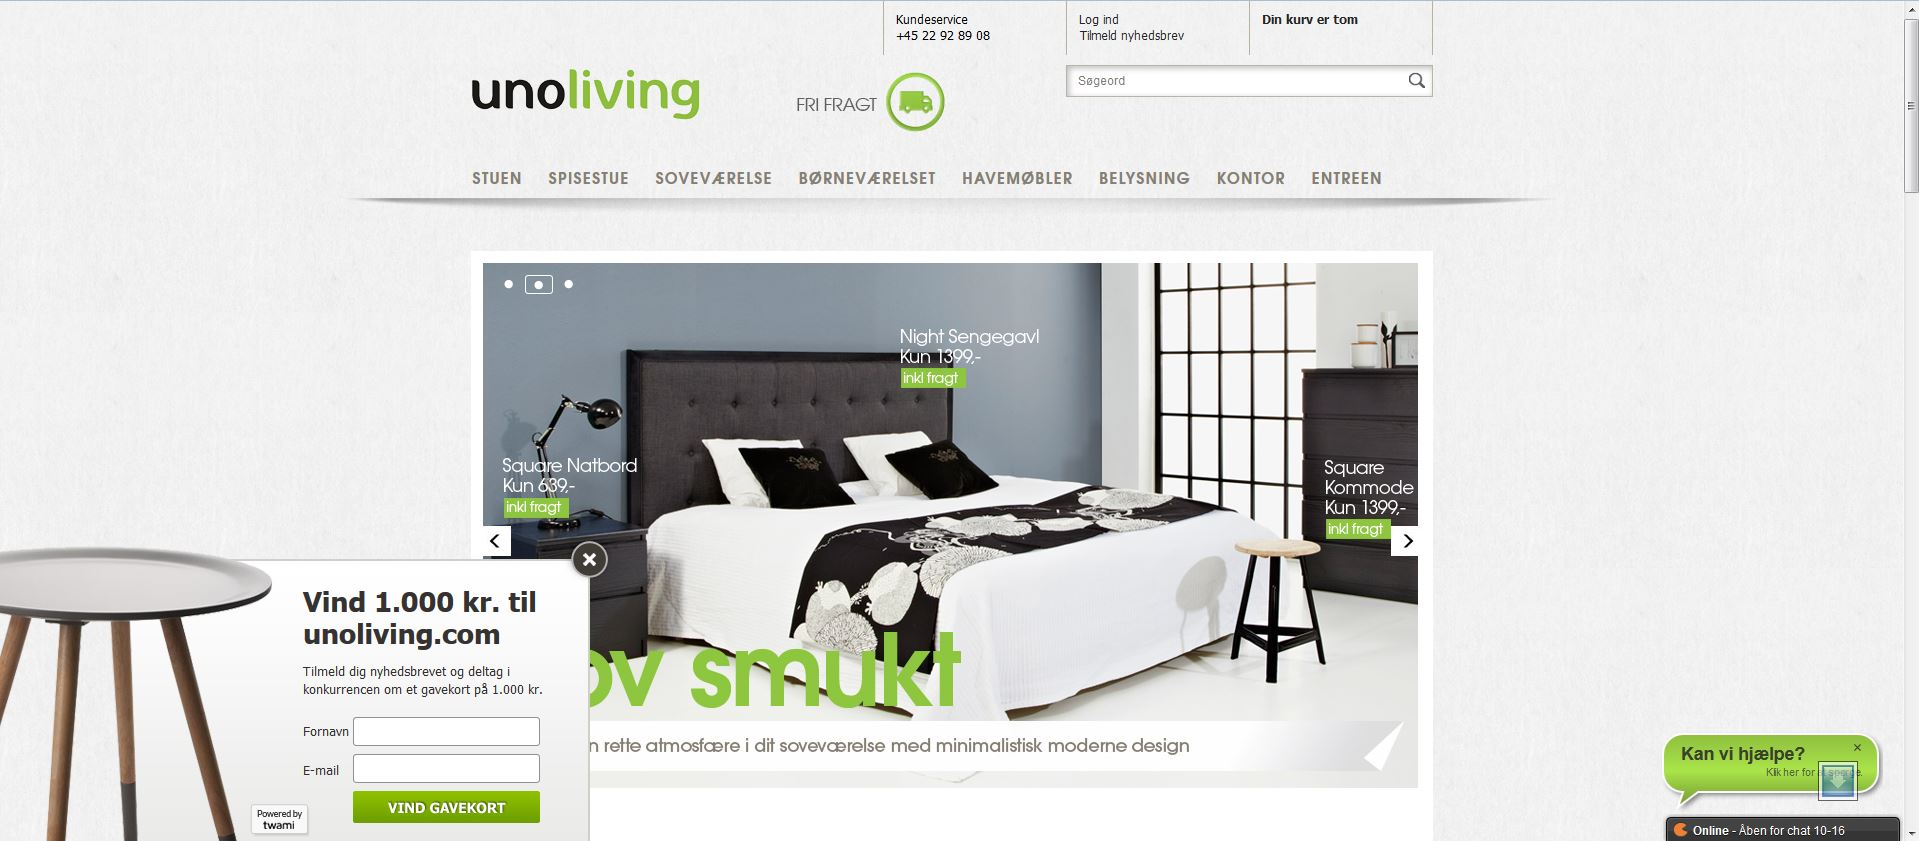 Unoliving Color profile & Brand